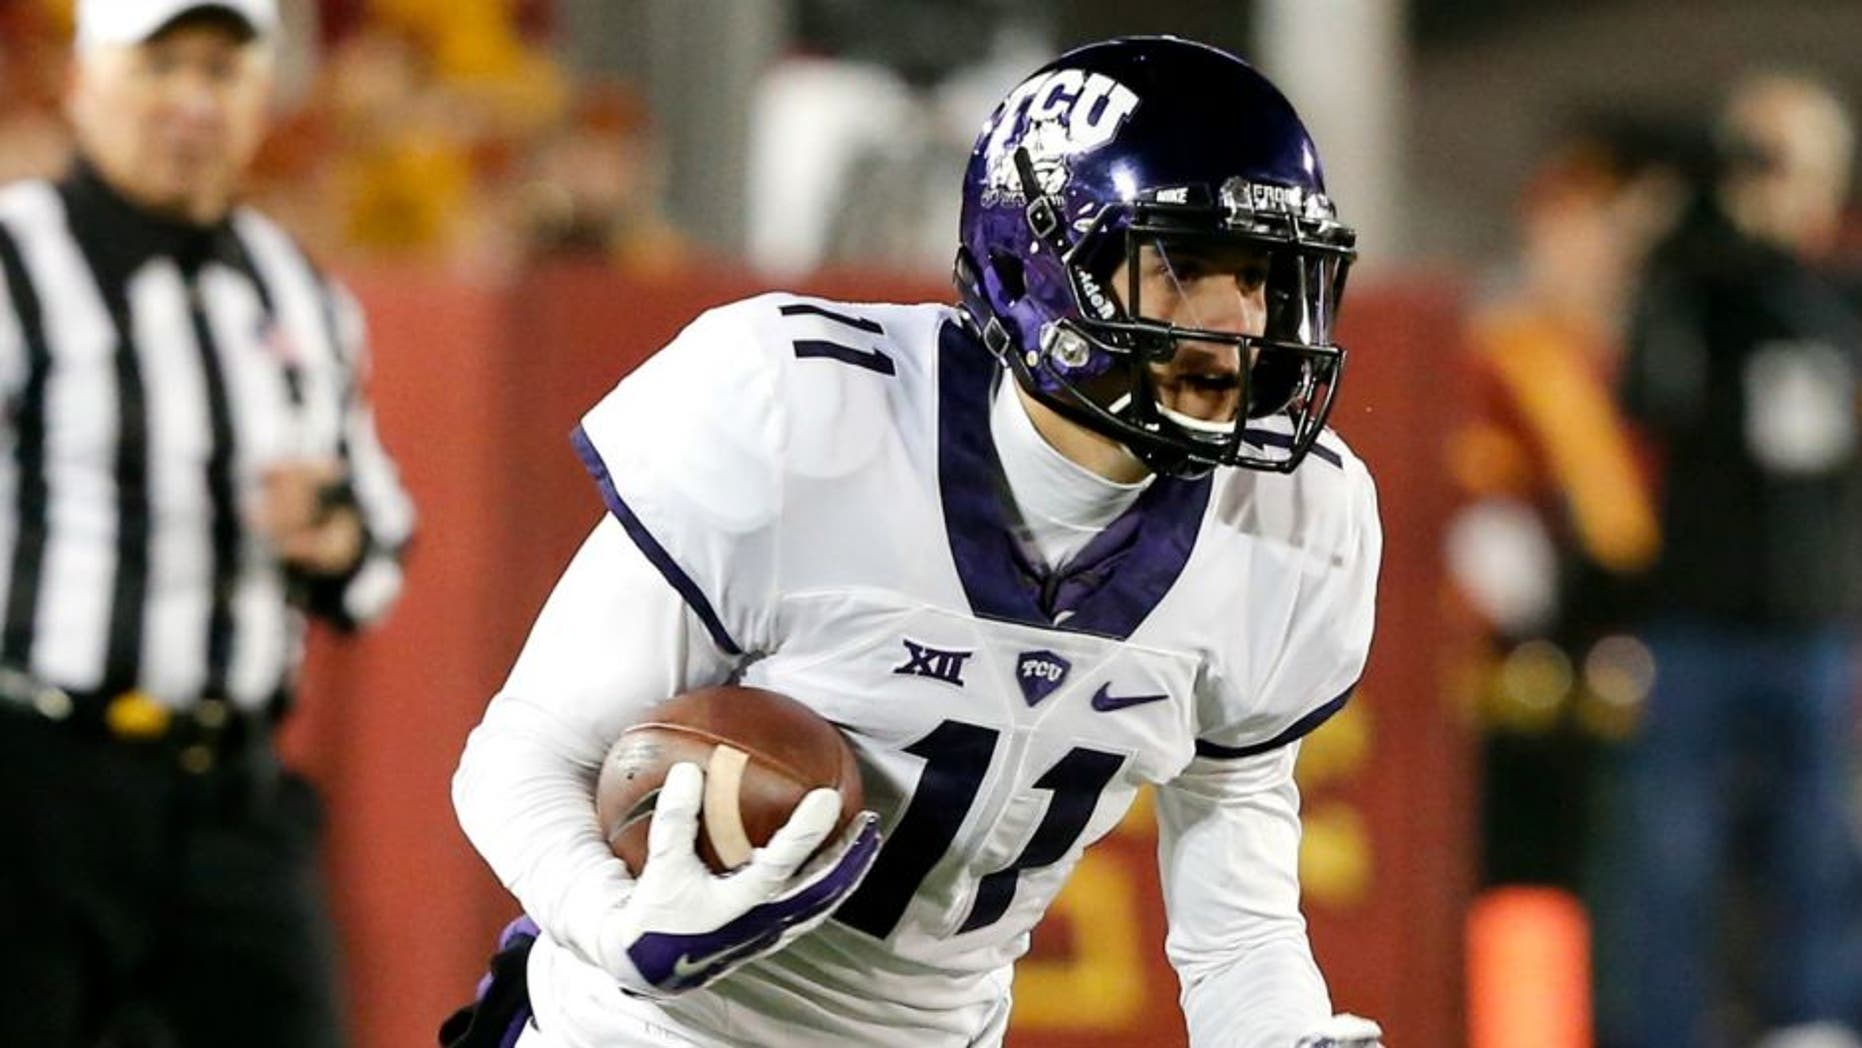 AMES, IA -- OCTOBER 17: Quarterback Zach Allen #11 of the TCU Horned Frogs scrambles for yards in the second half of play at Jack Trice Stadium on October 17, 2015 in Ames, Iowa. TCU defeated Iowa State 45-21. (Photo by David K Purdy/Getty Images) *** Local Caption *** Zach Allen;